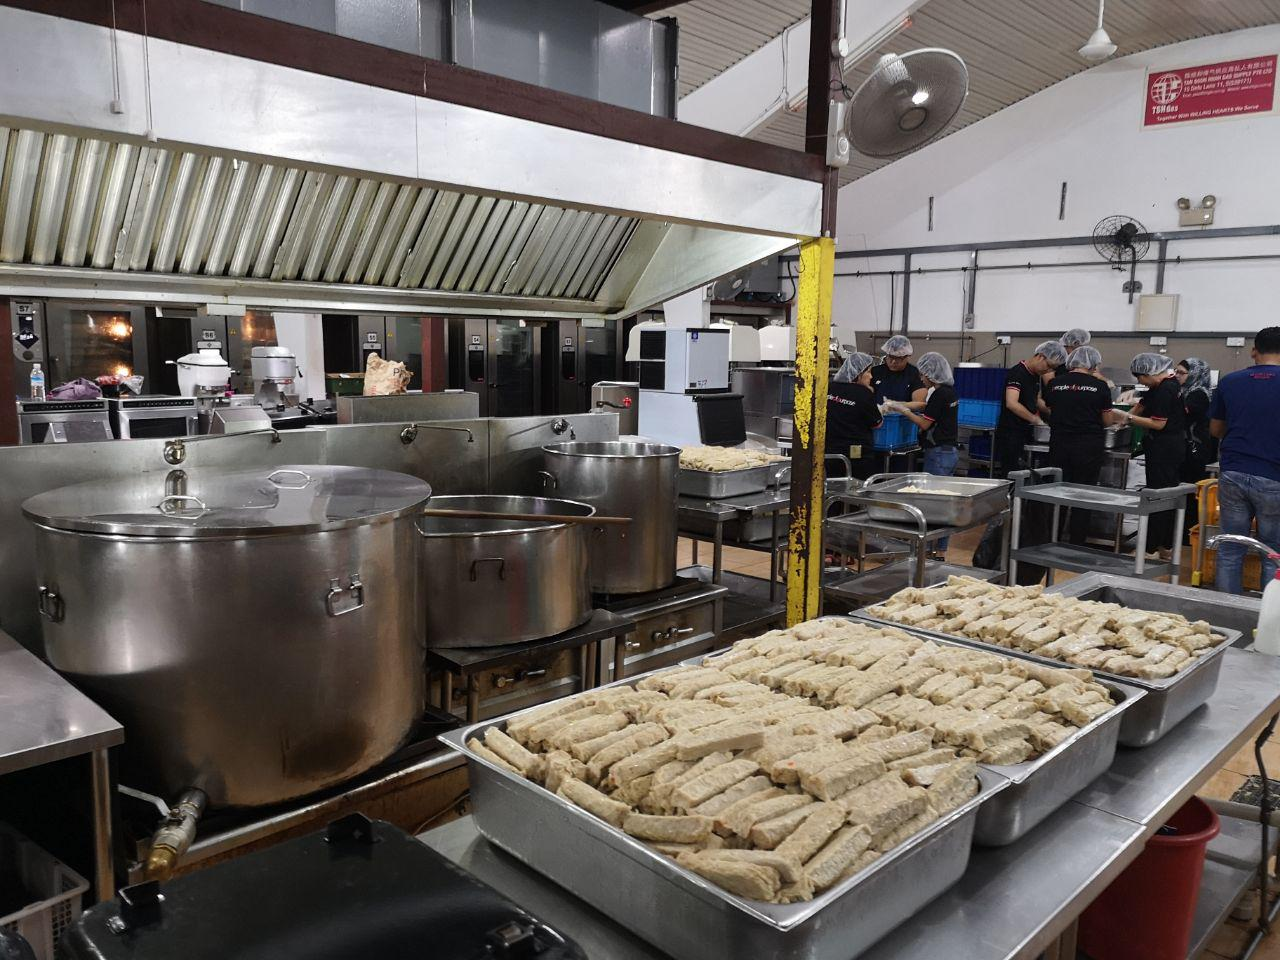 The kitchen, where volunteers assist cooks with the preparation of meals.